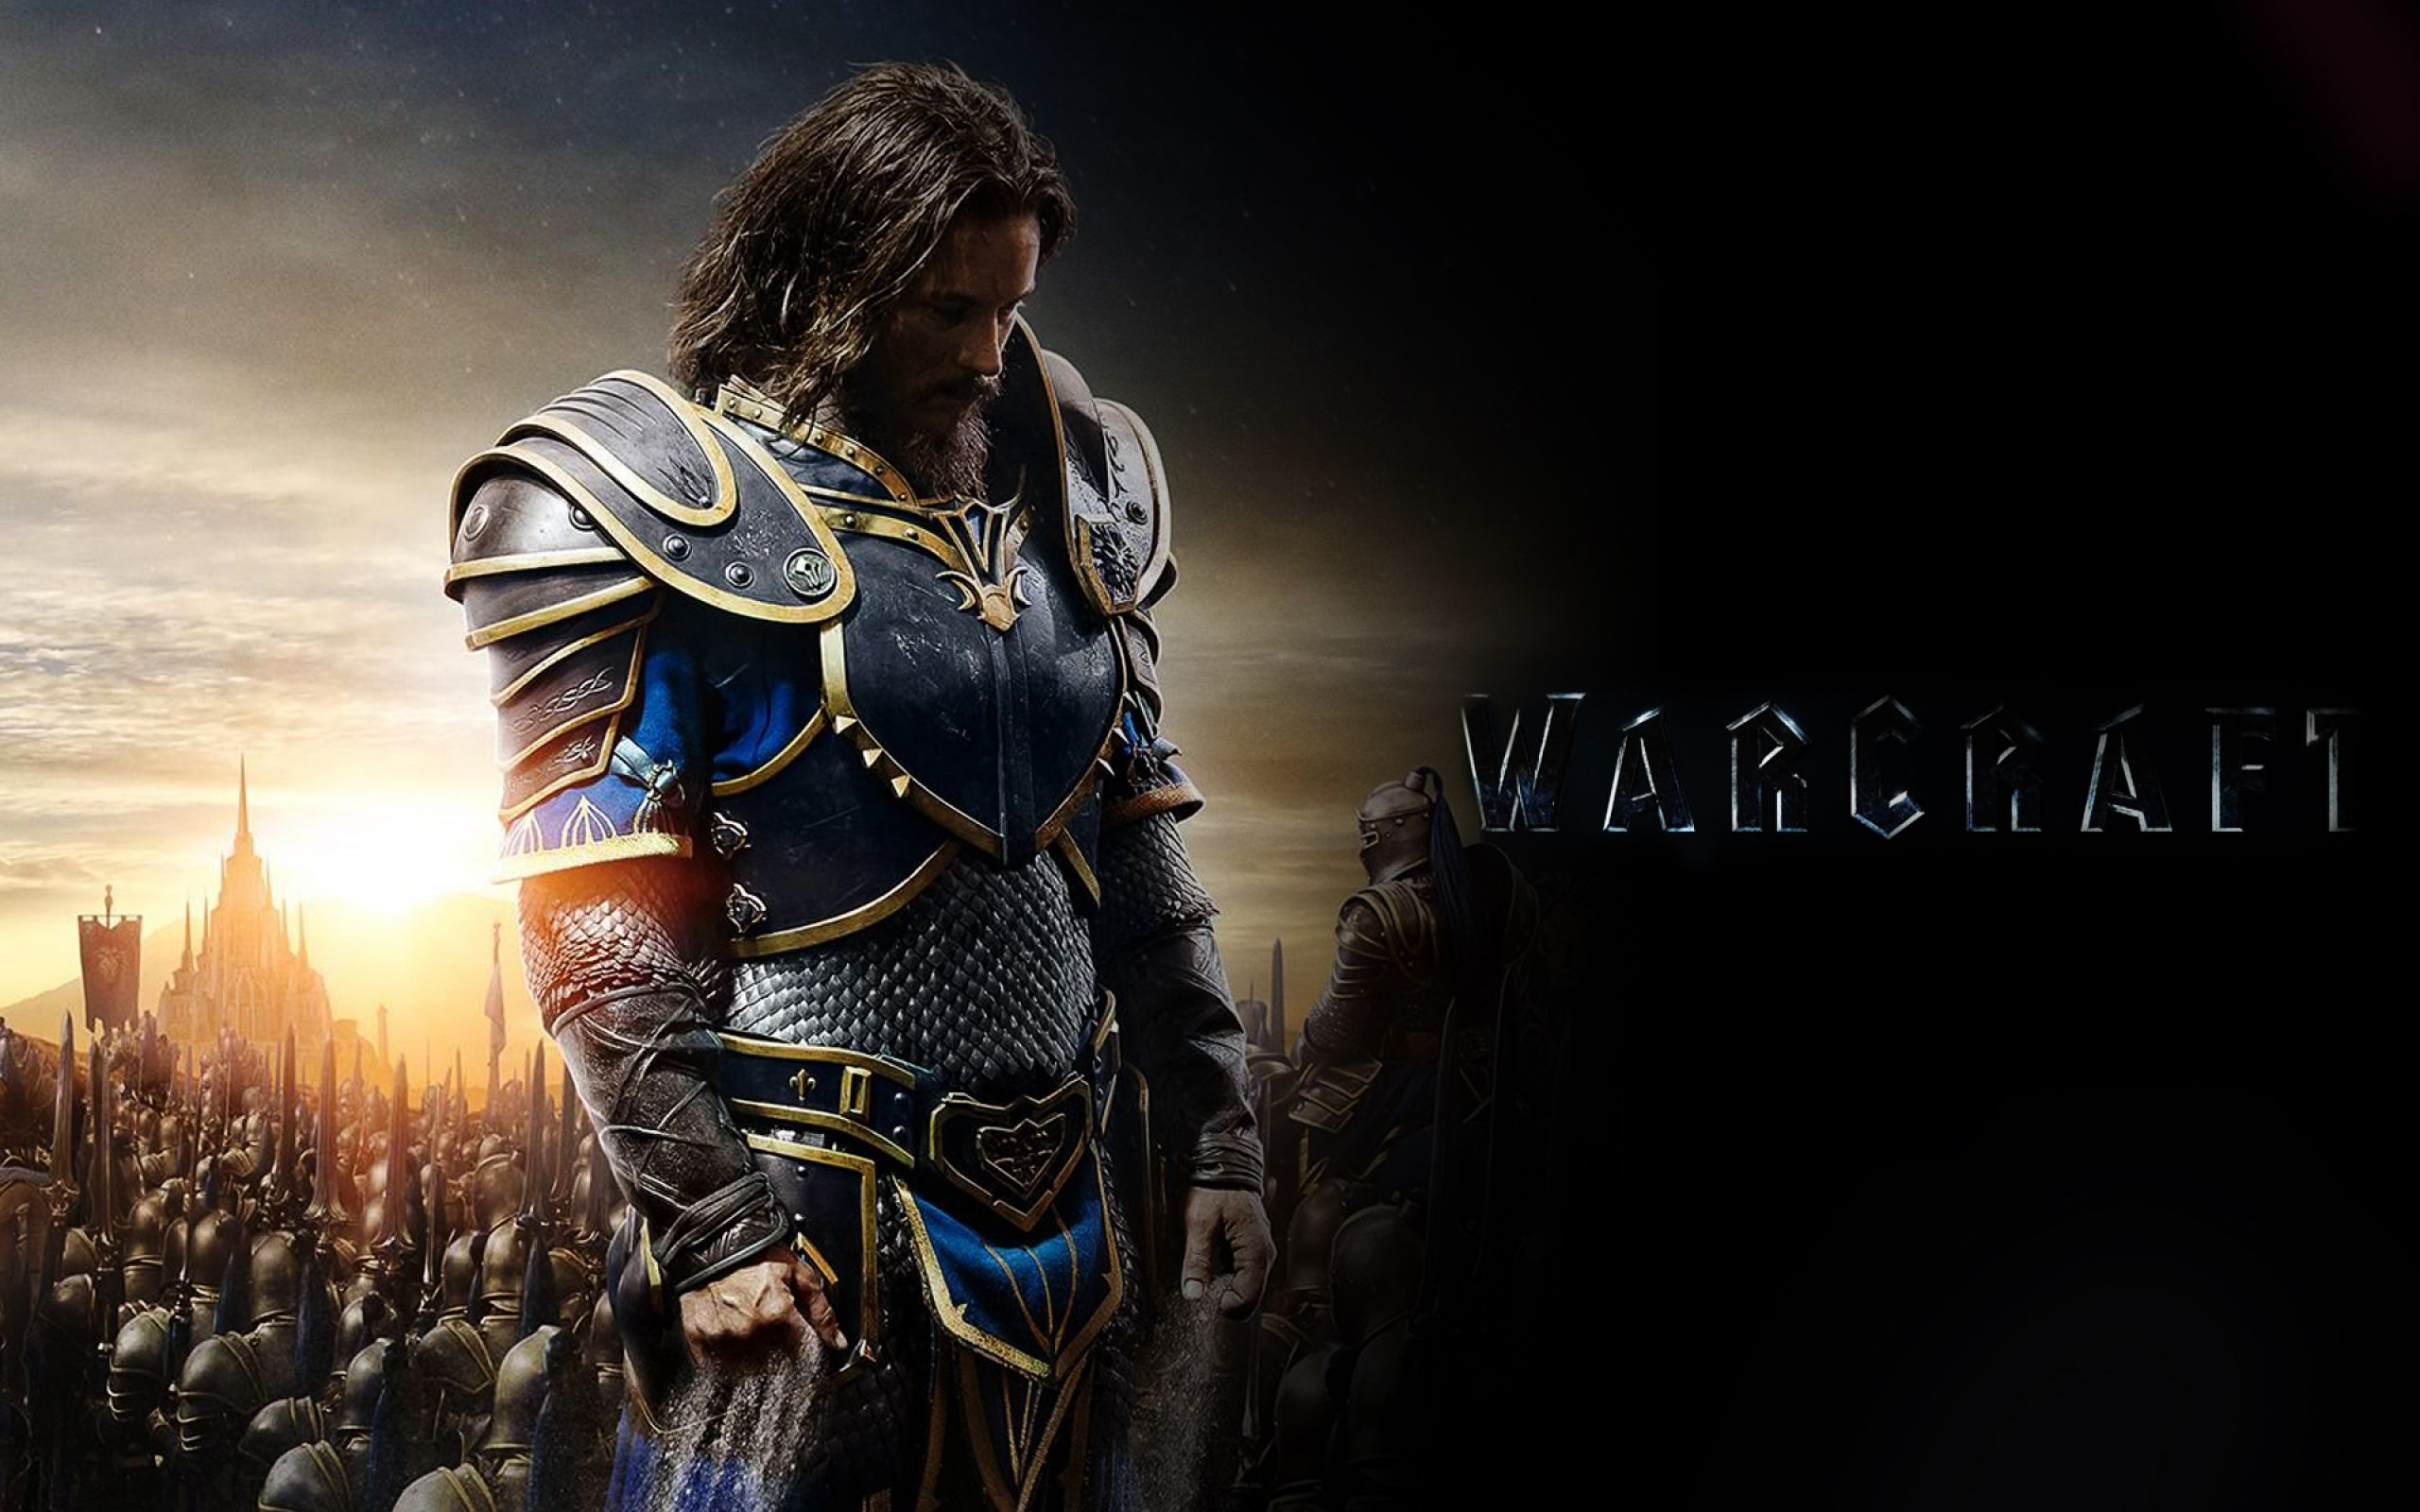 Warcraft Movie Wallpapers Top Free Warcraft Movie Backgrounds